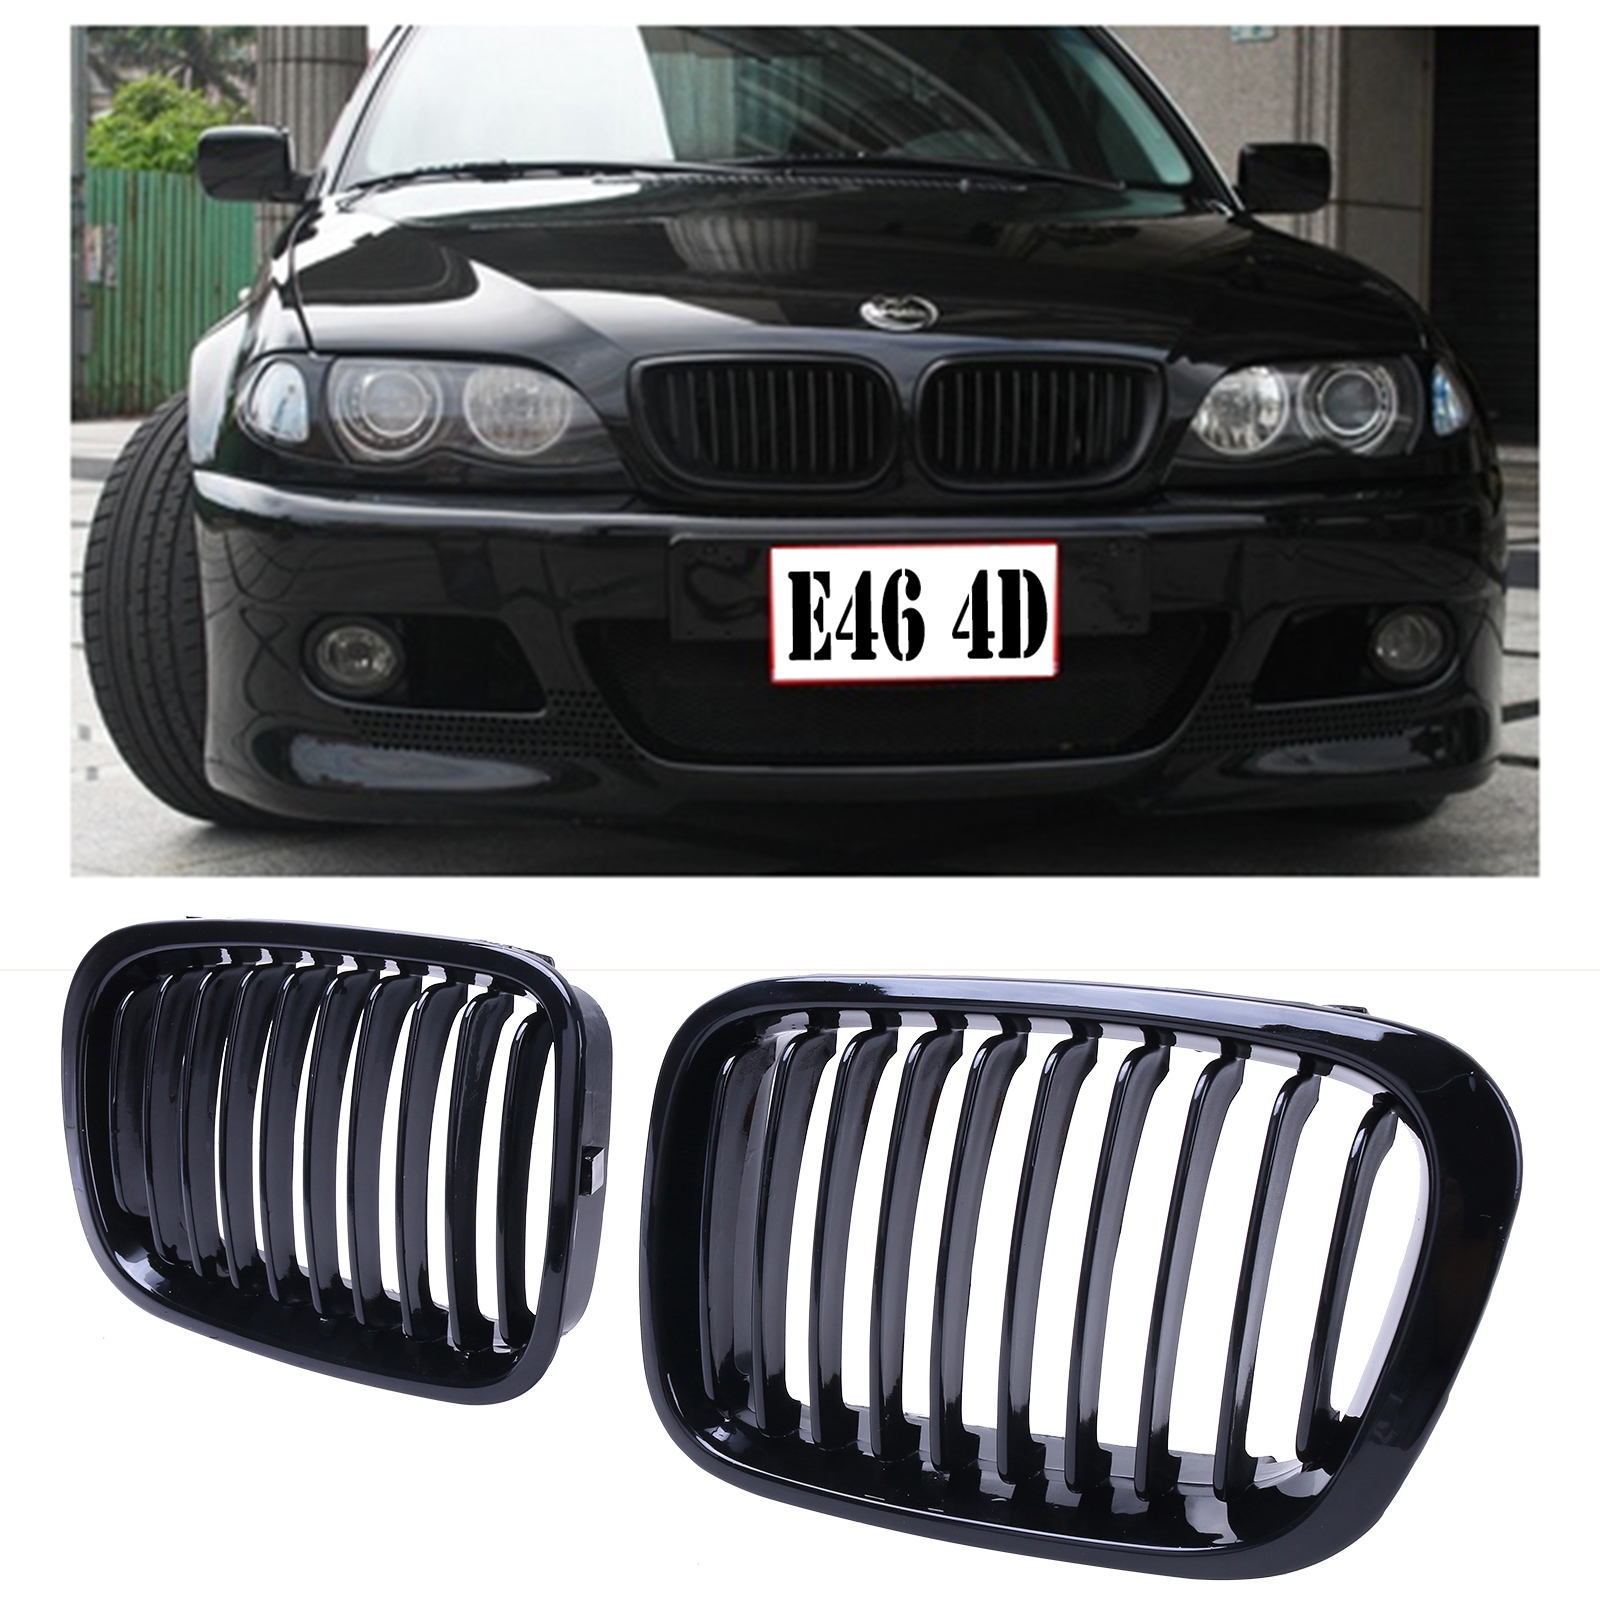 2x gloss black front kidney grills grille fit bmw for bmw e46 sedan 320i 325i 325xi 330i 330xi 323i 328i 318i 1998 2001 c 5